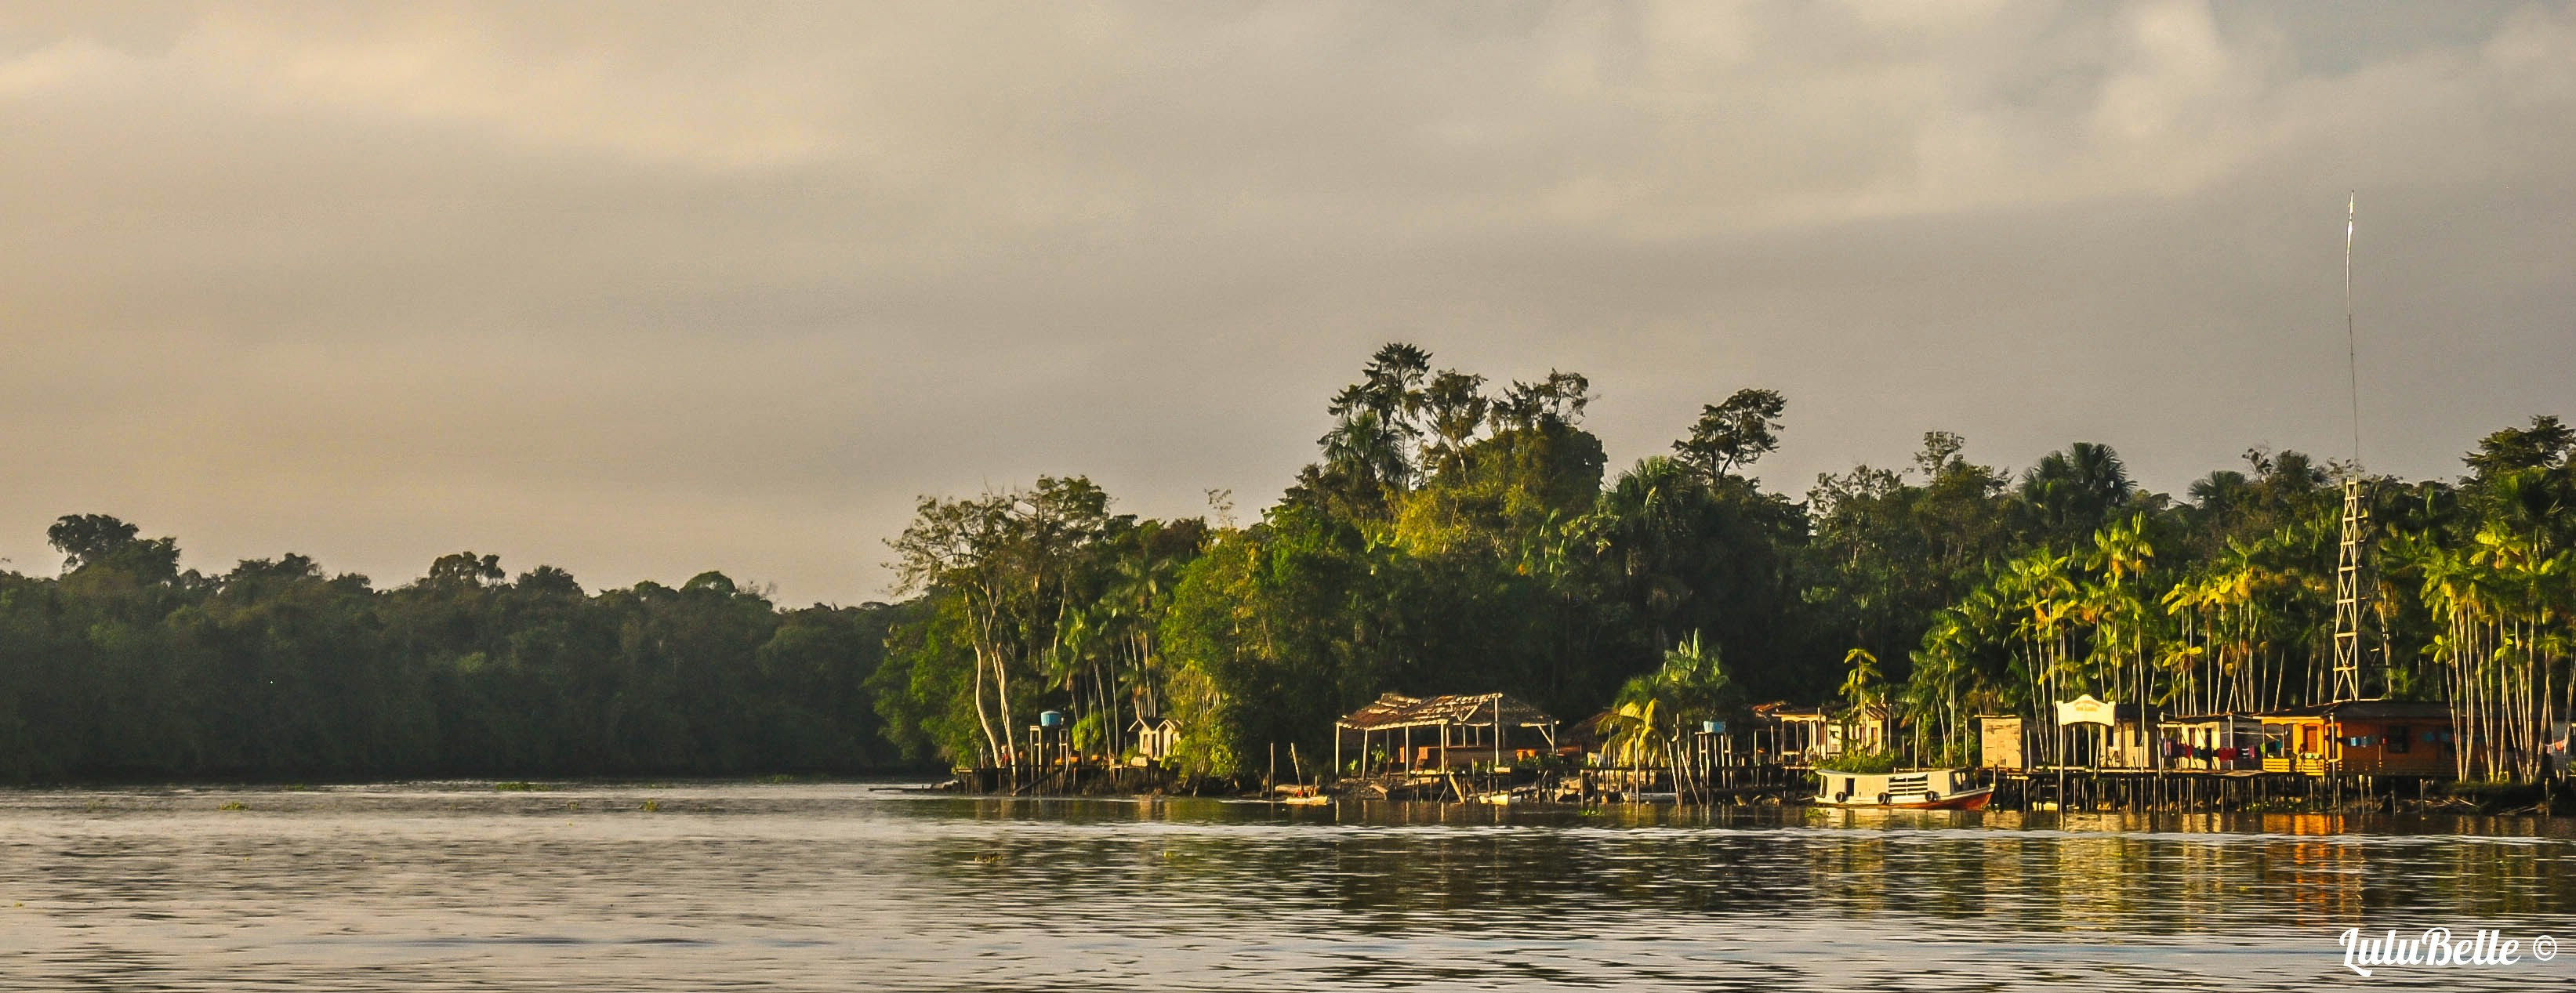 Amazon ferry view, A2A Expedition